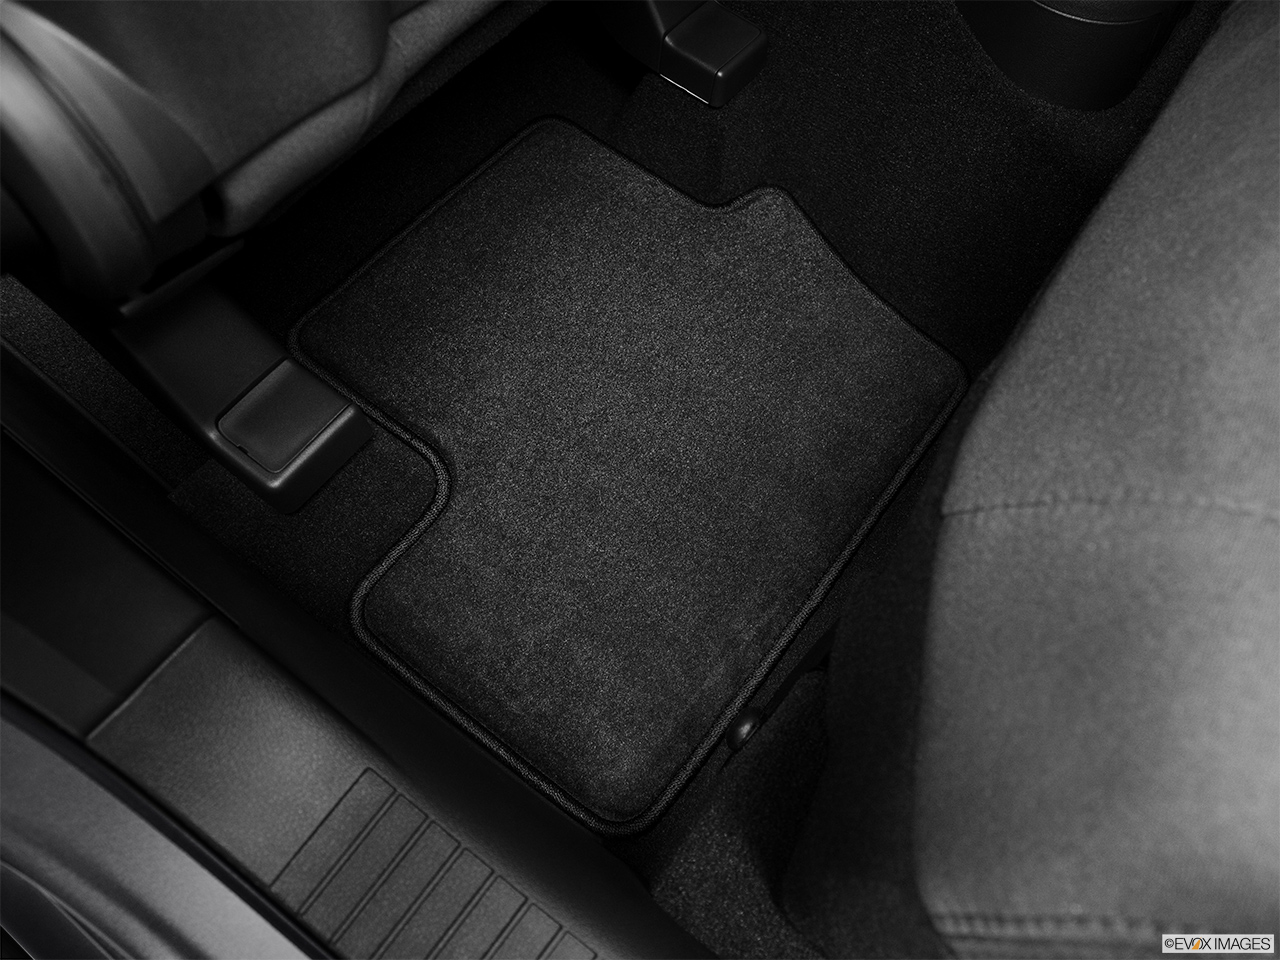 2012 Jeep Patriot Sport Rear driver's side floor mat. Mid-seat level from outside looking in.